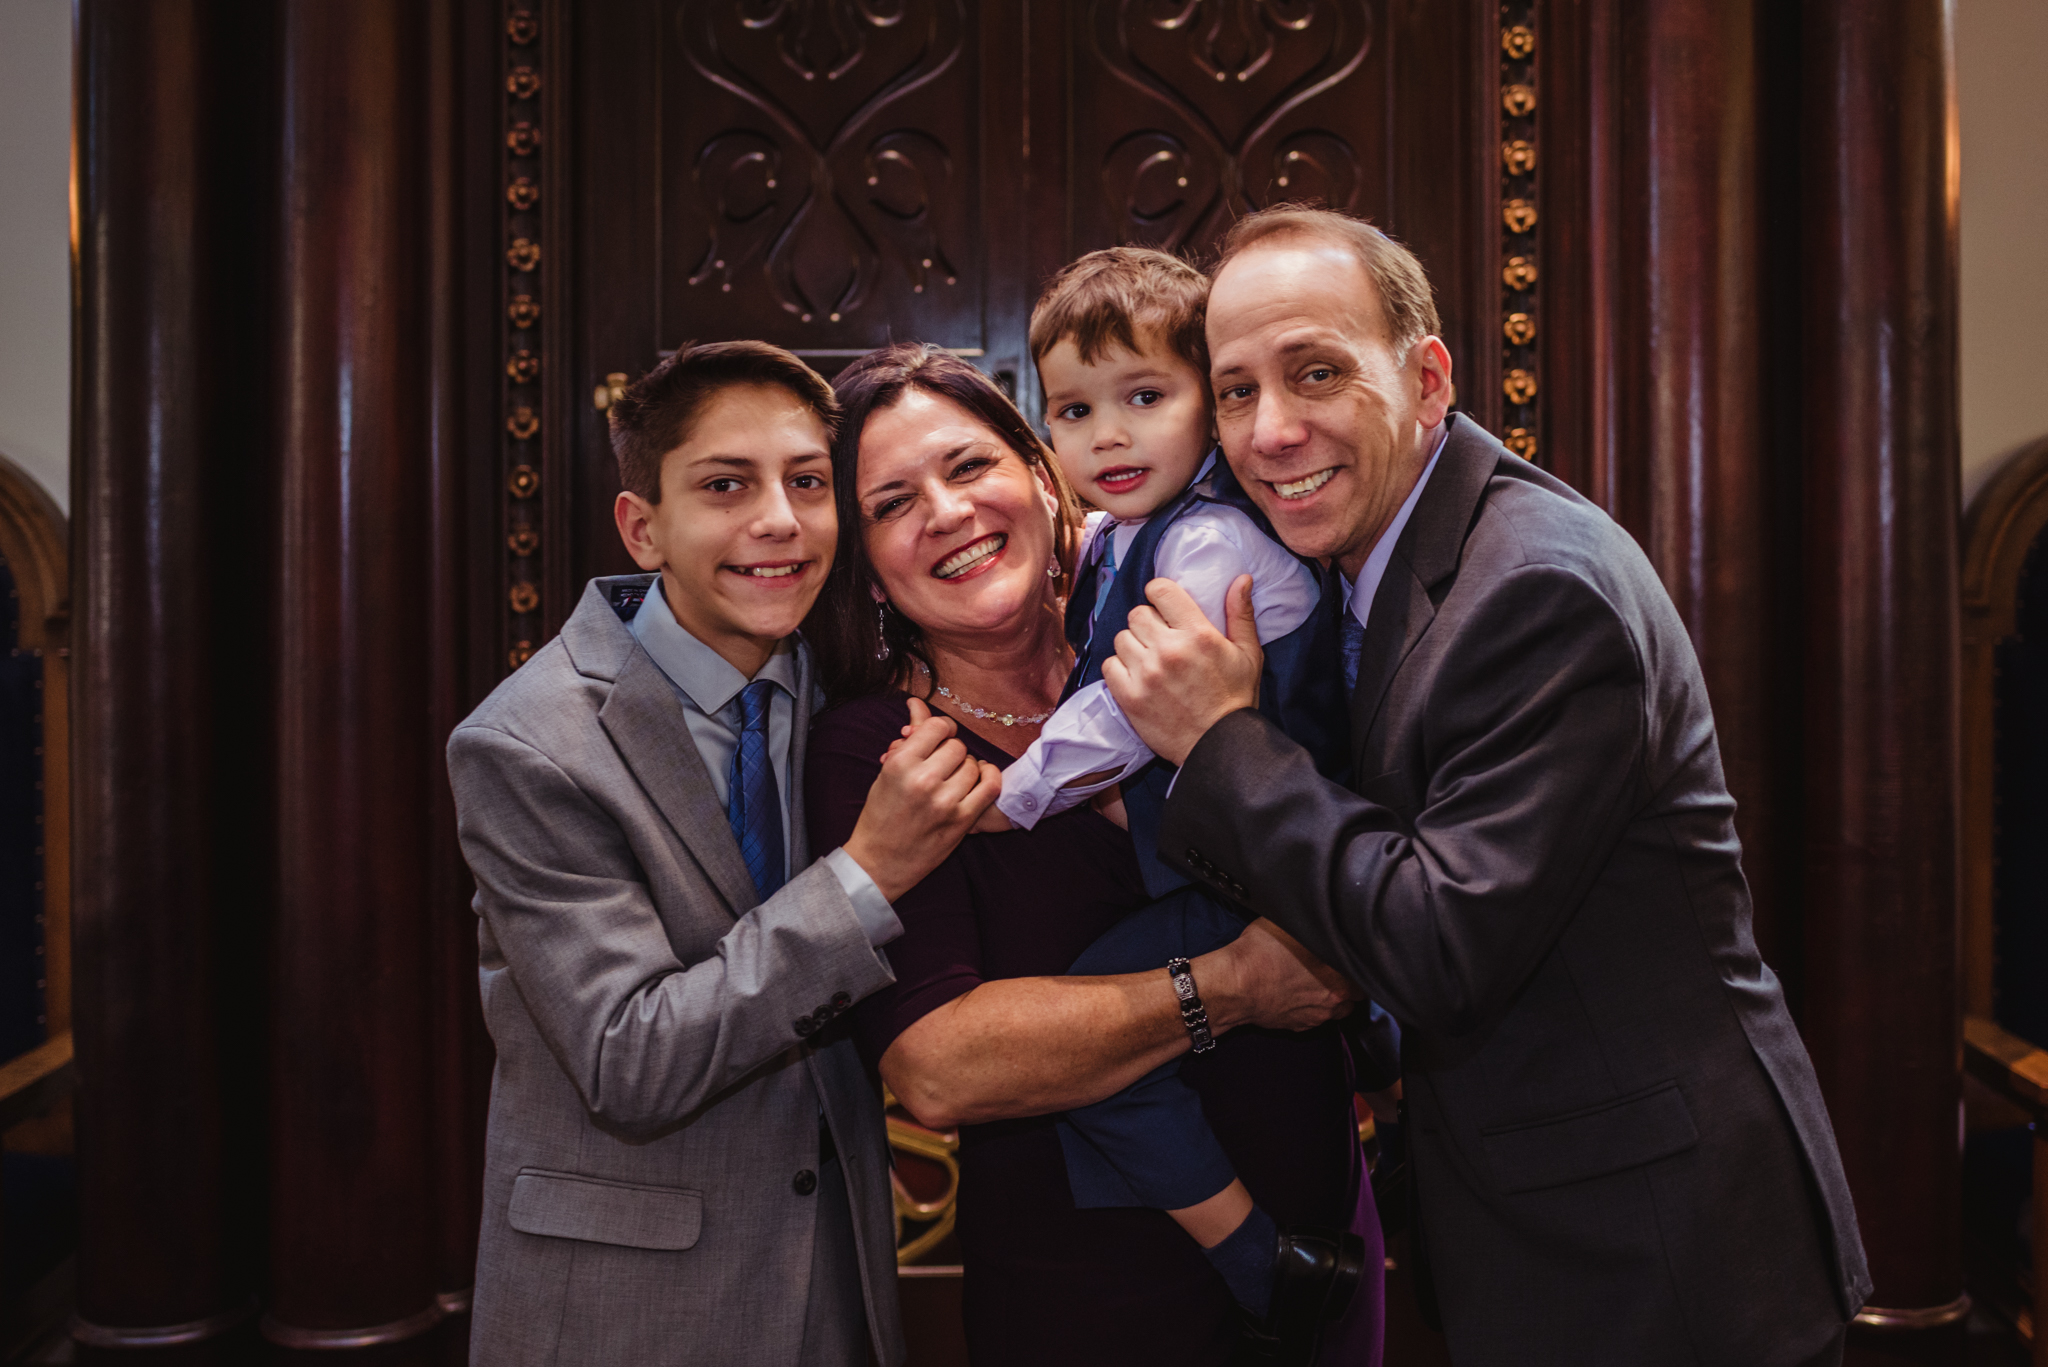 The family poses with their bar mitzvah boy at the ark at Temple Beth Or in Raleigh.